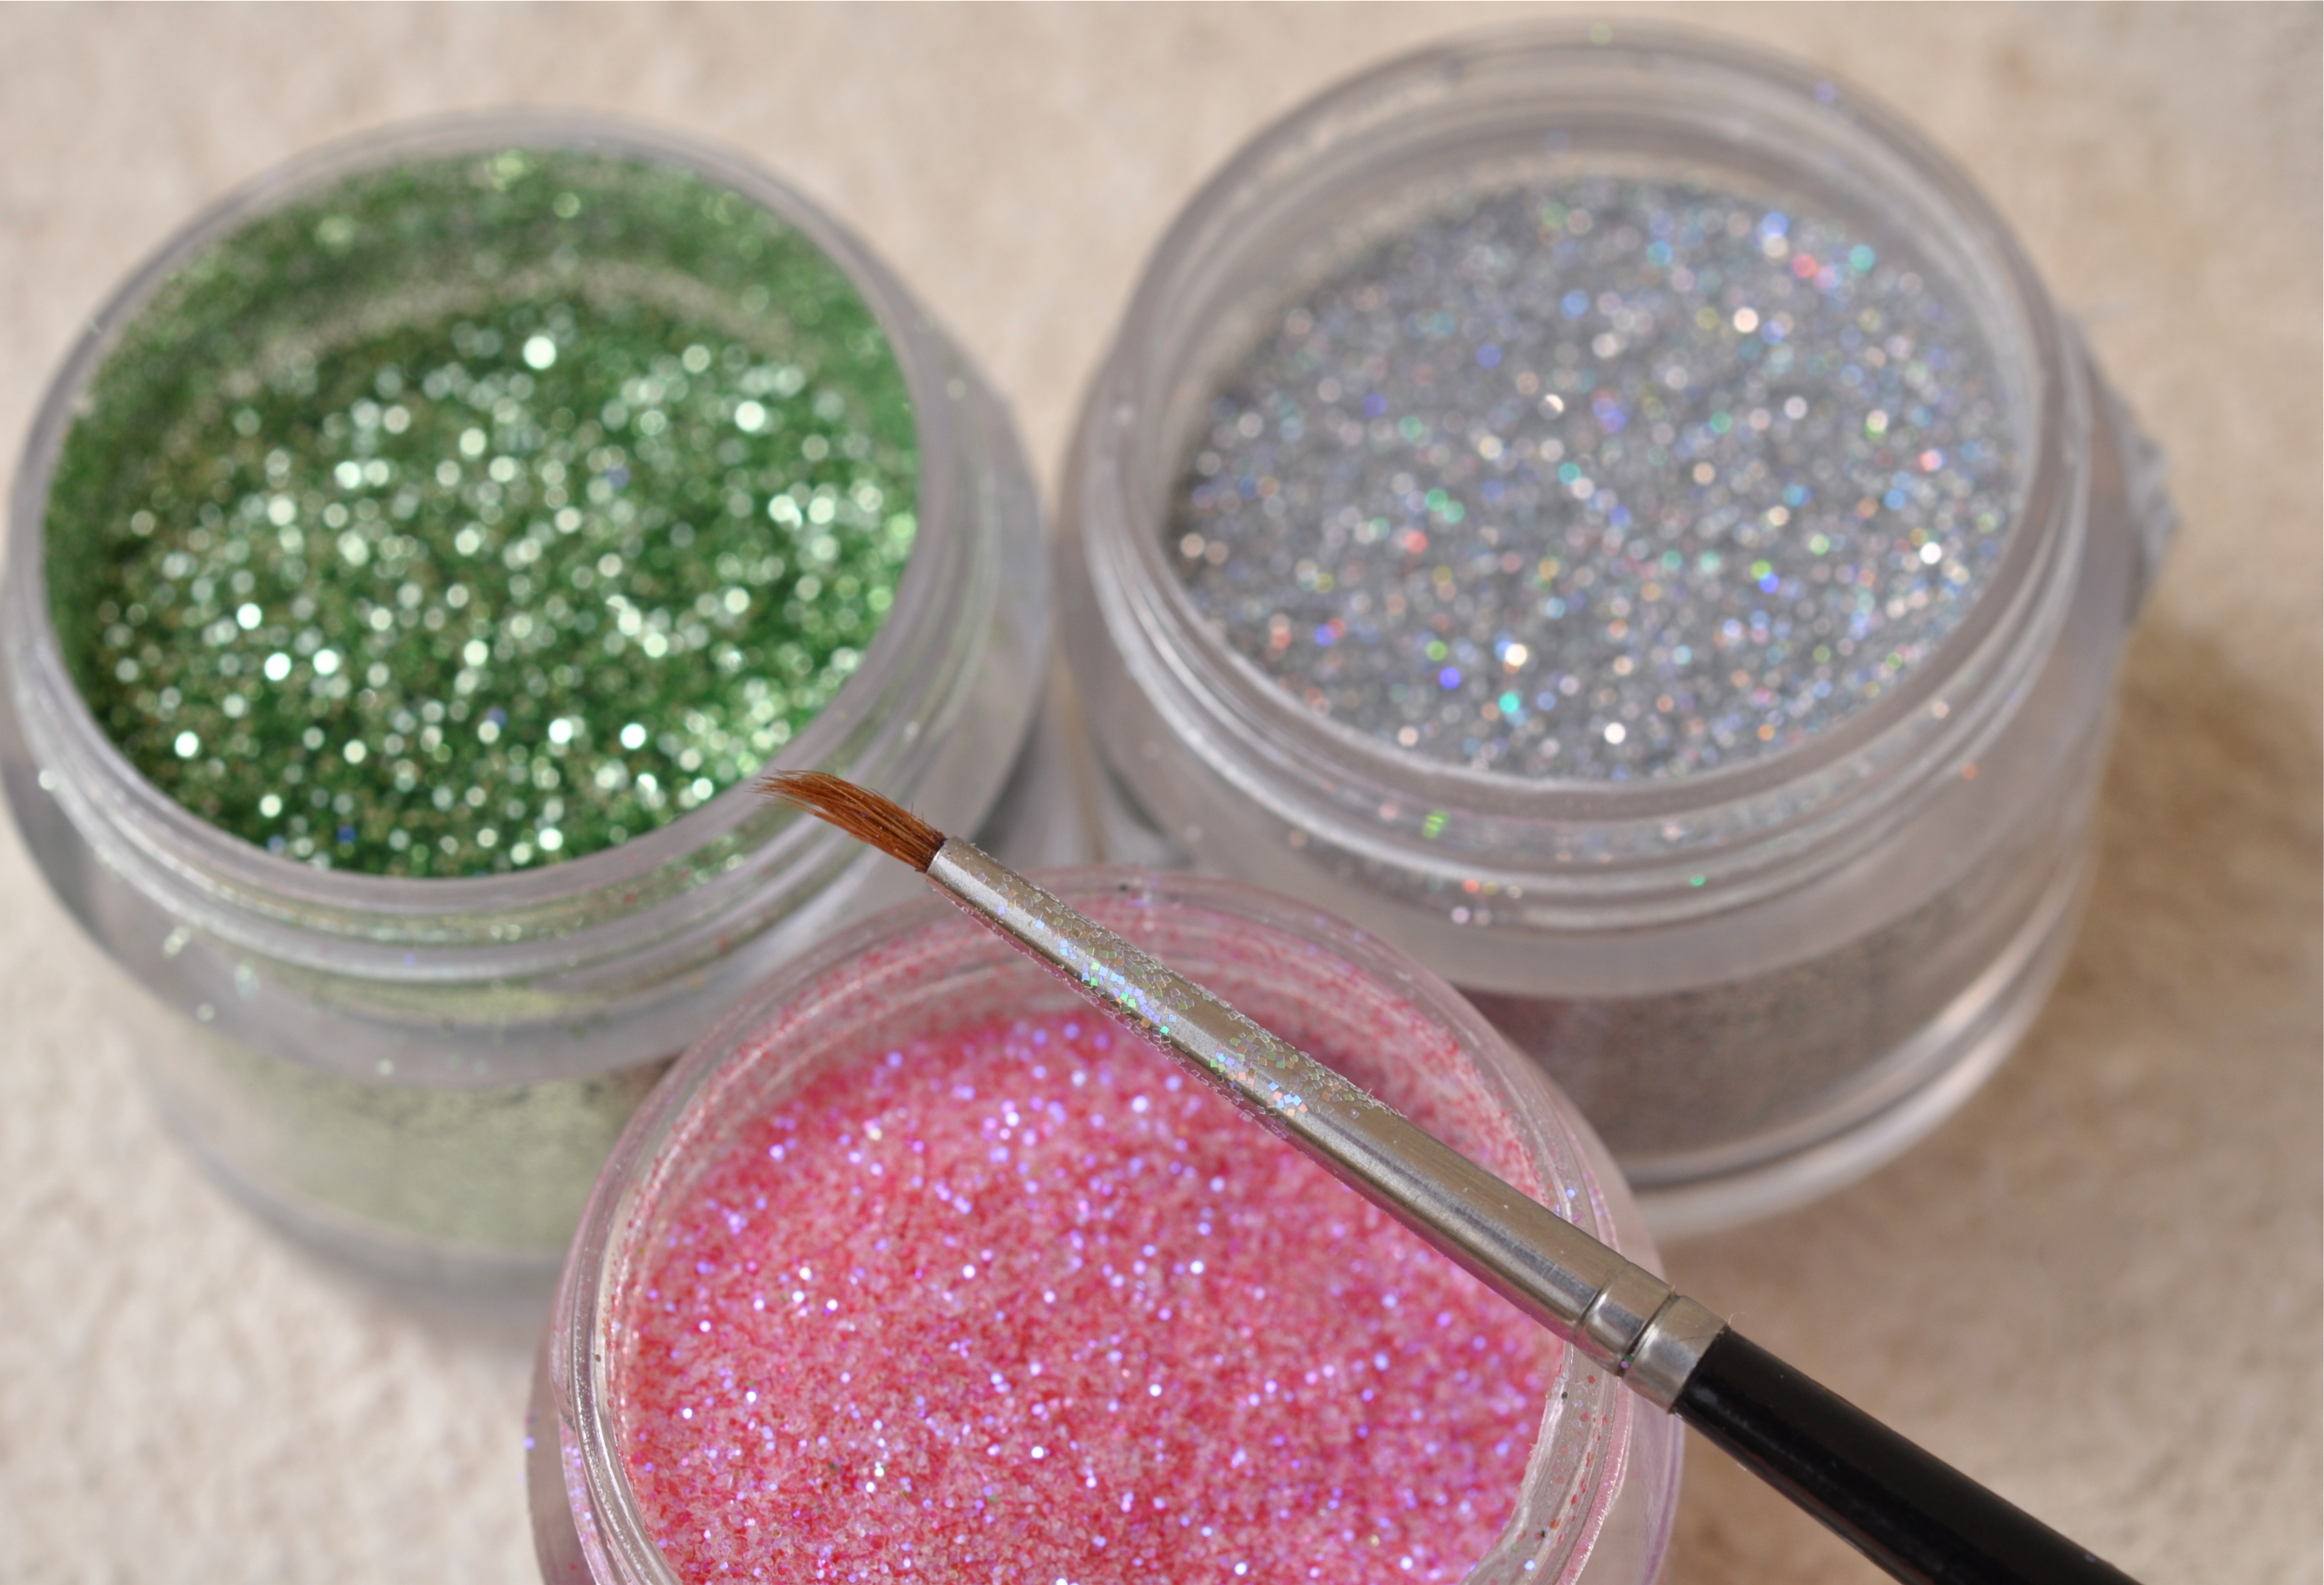 DIY Edible Sparkly Glitter in 5 Easy Steps   Home Trends ...